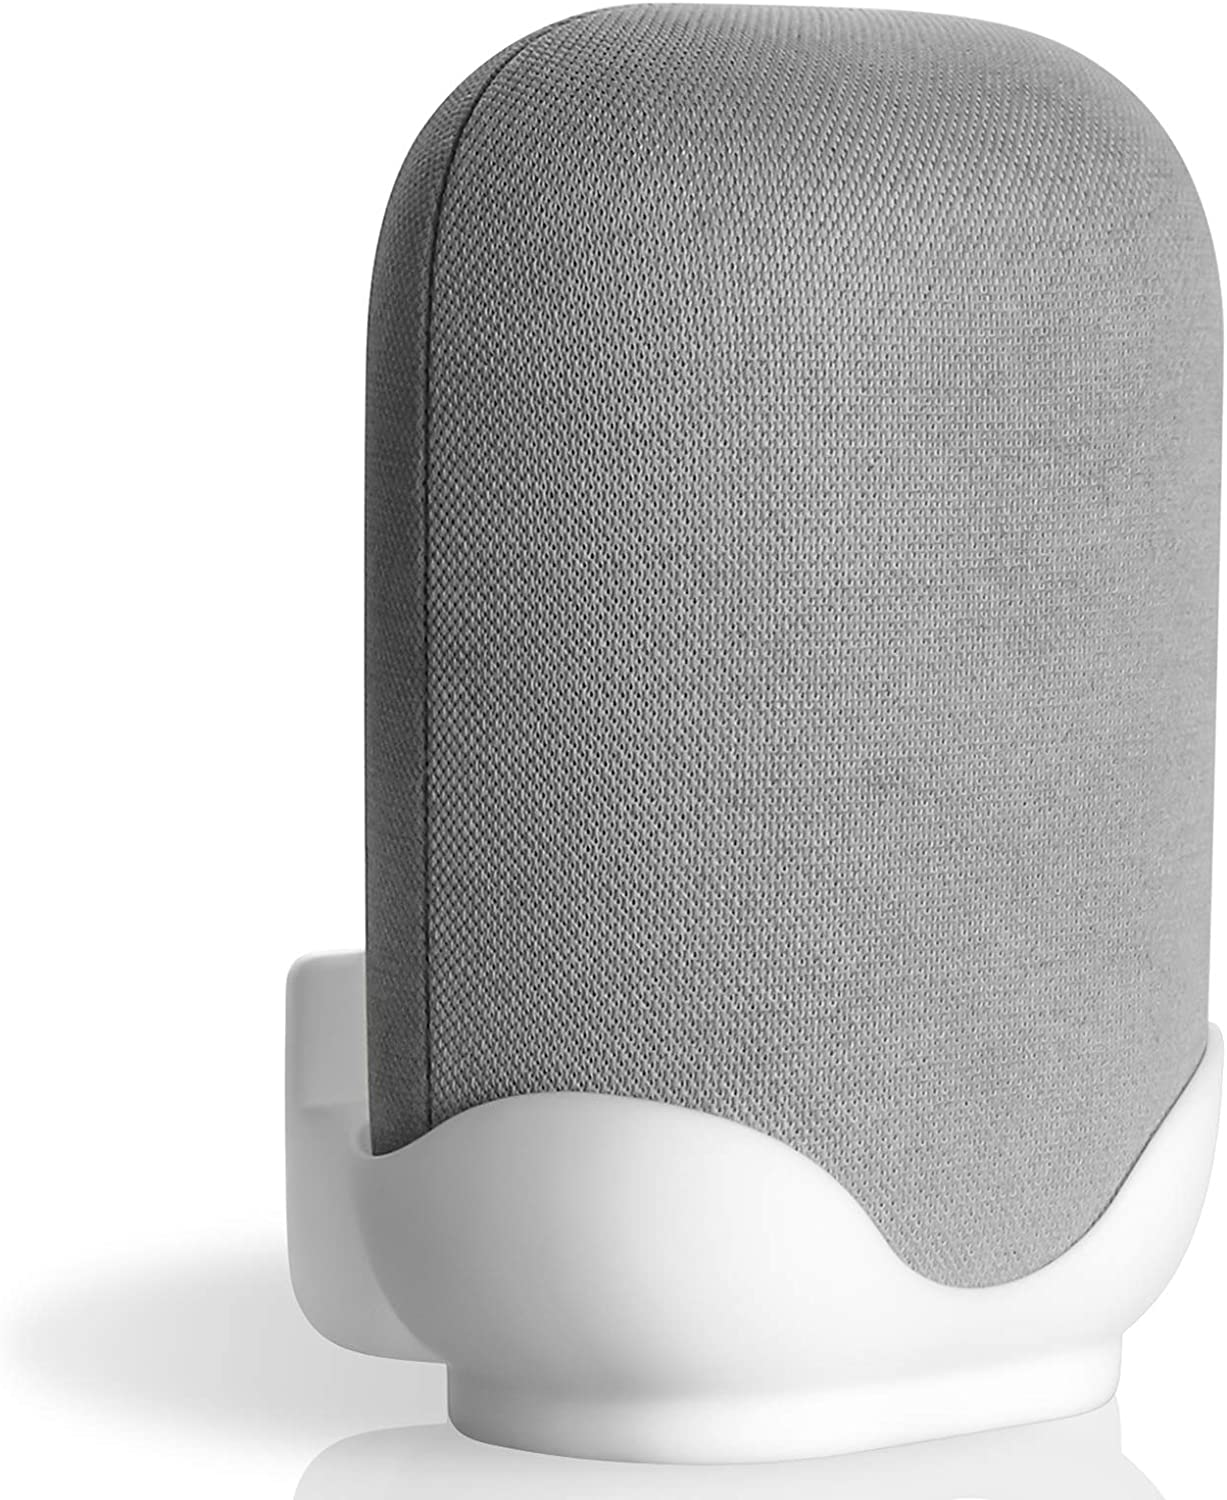 Wall Mount Holder Compatible with Google Nest Audio, ABS Wall Mount for Wall Hanging, Clear Desktop Placement Bracket Stand for Home Speaker-White